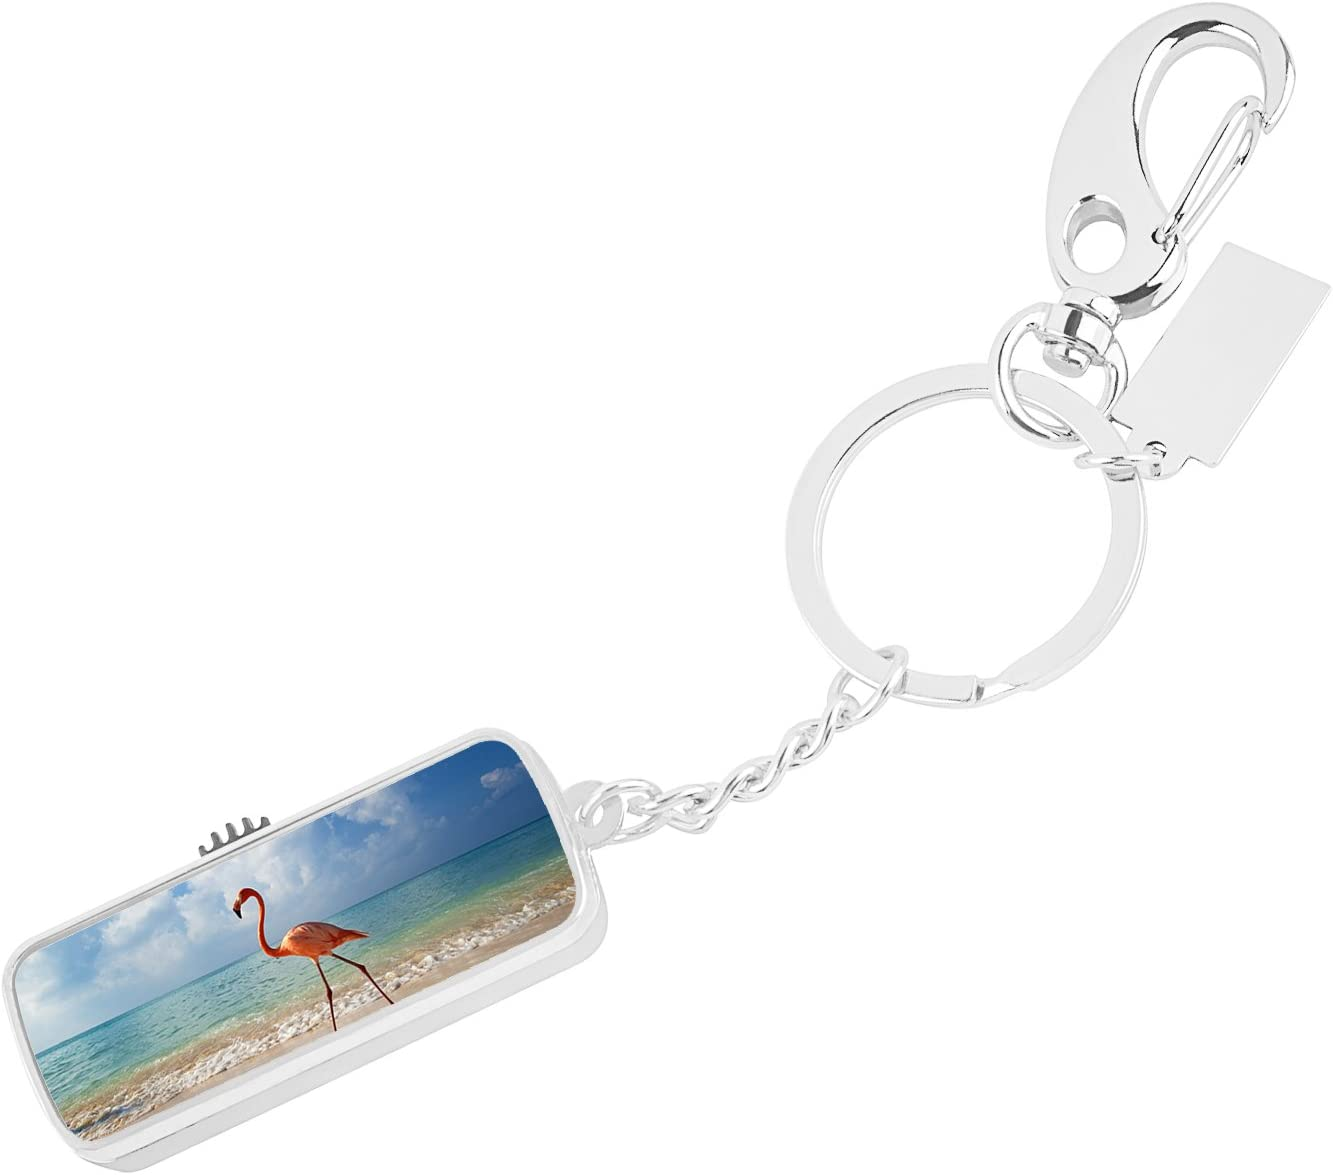 USB Flash Drive Ultra 16 GB Memory USB 2.0 High Speed Data Storage Personalize Customed Best Gift Silver - Flamingo